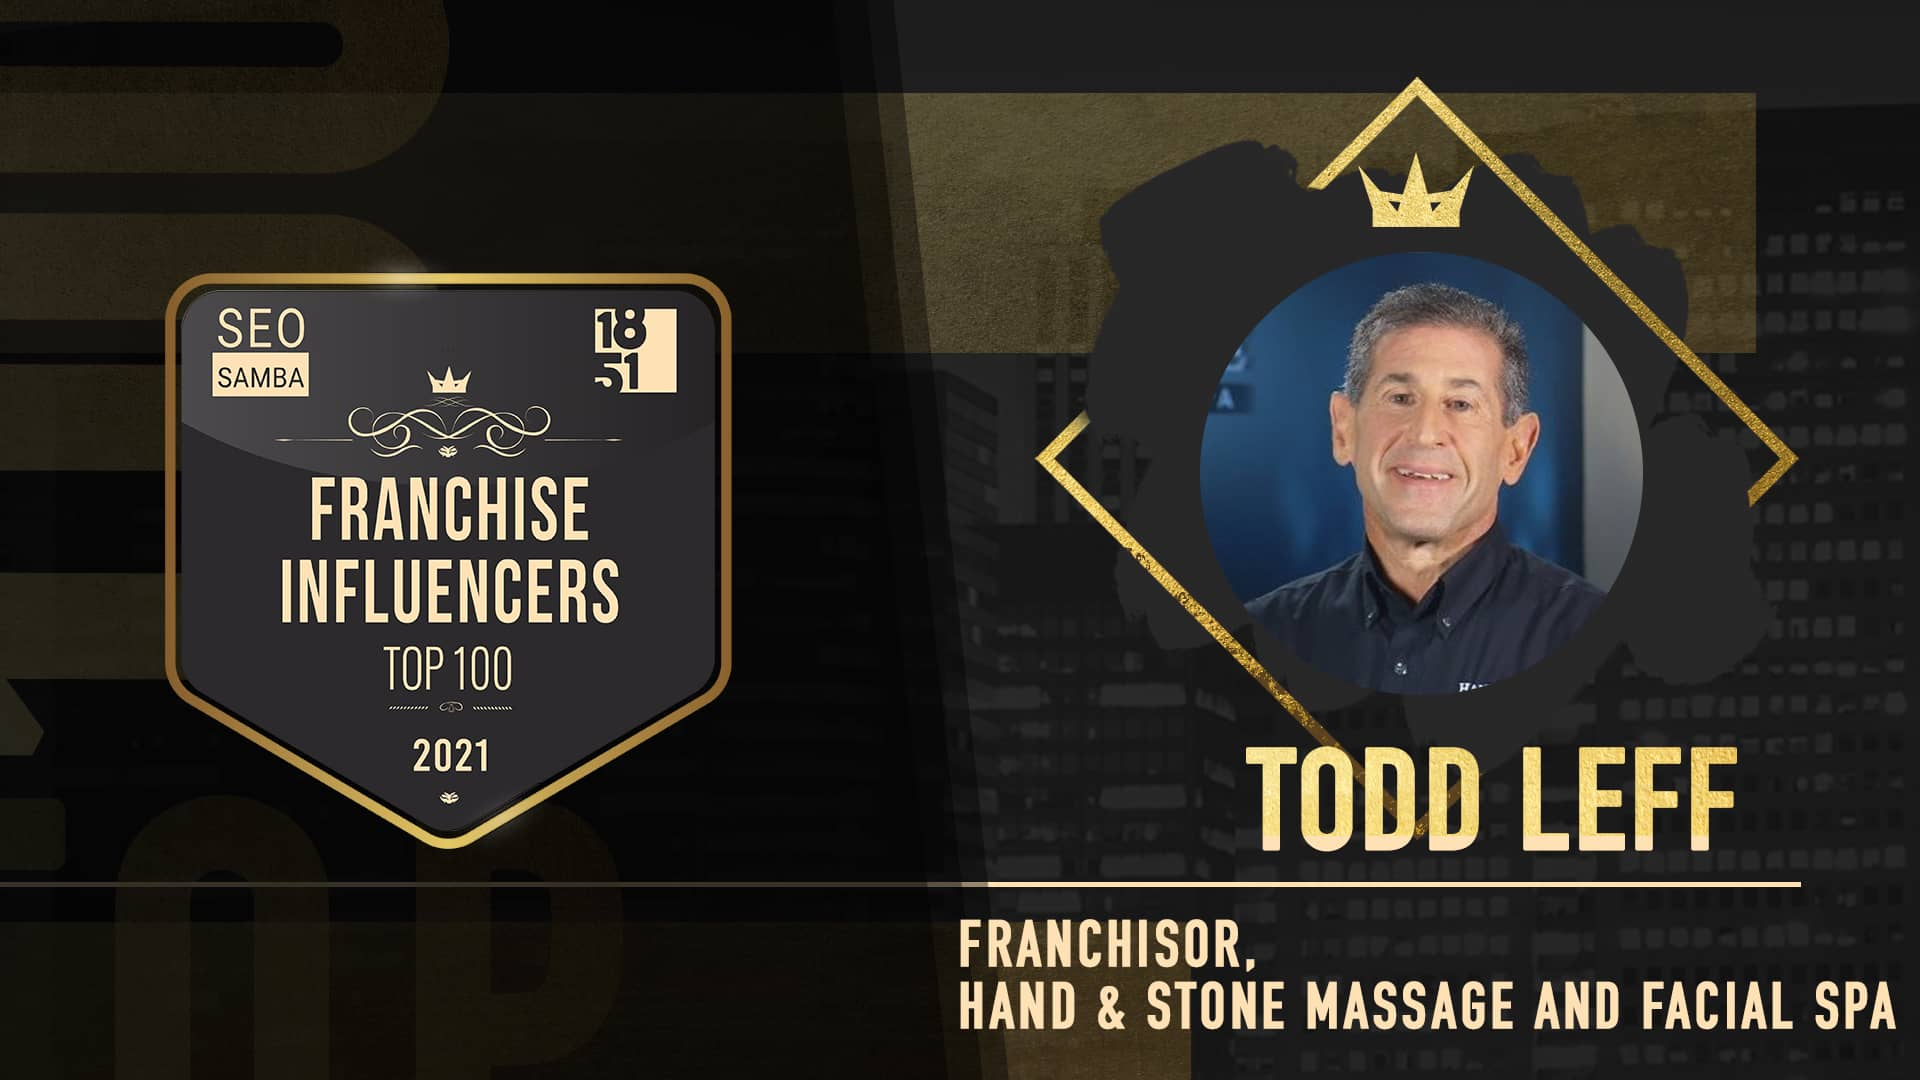 todd-leff-hand-and-stone